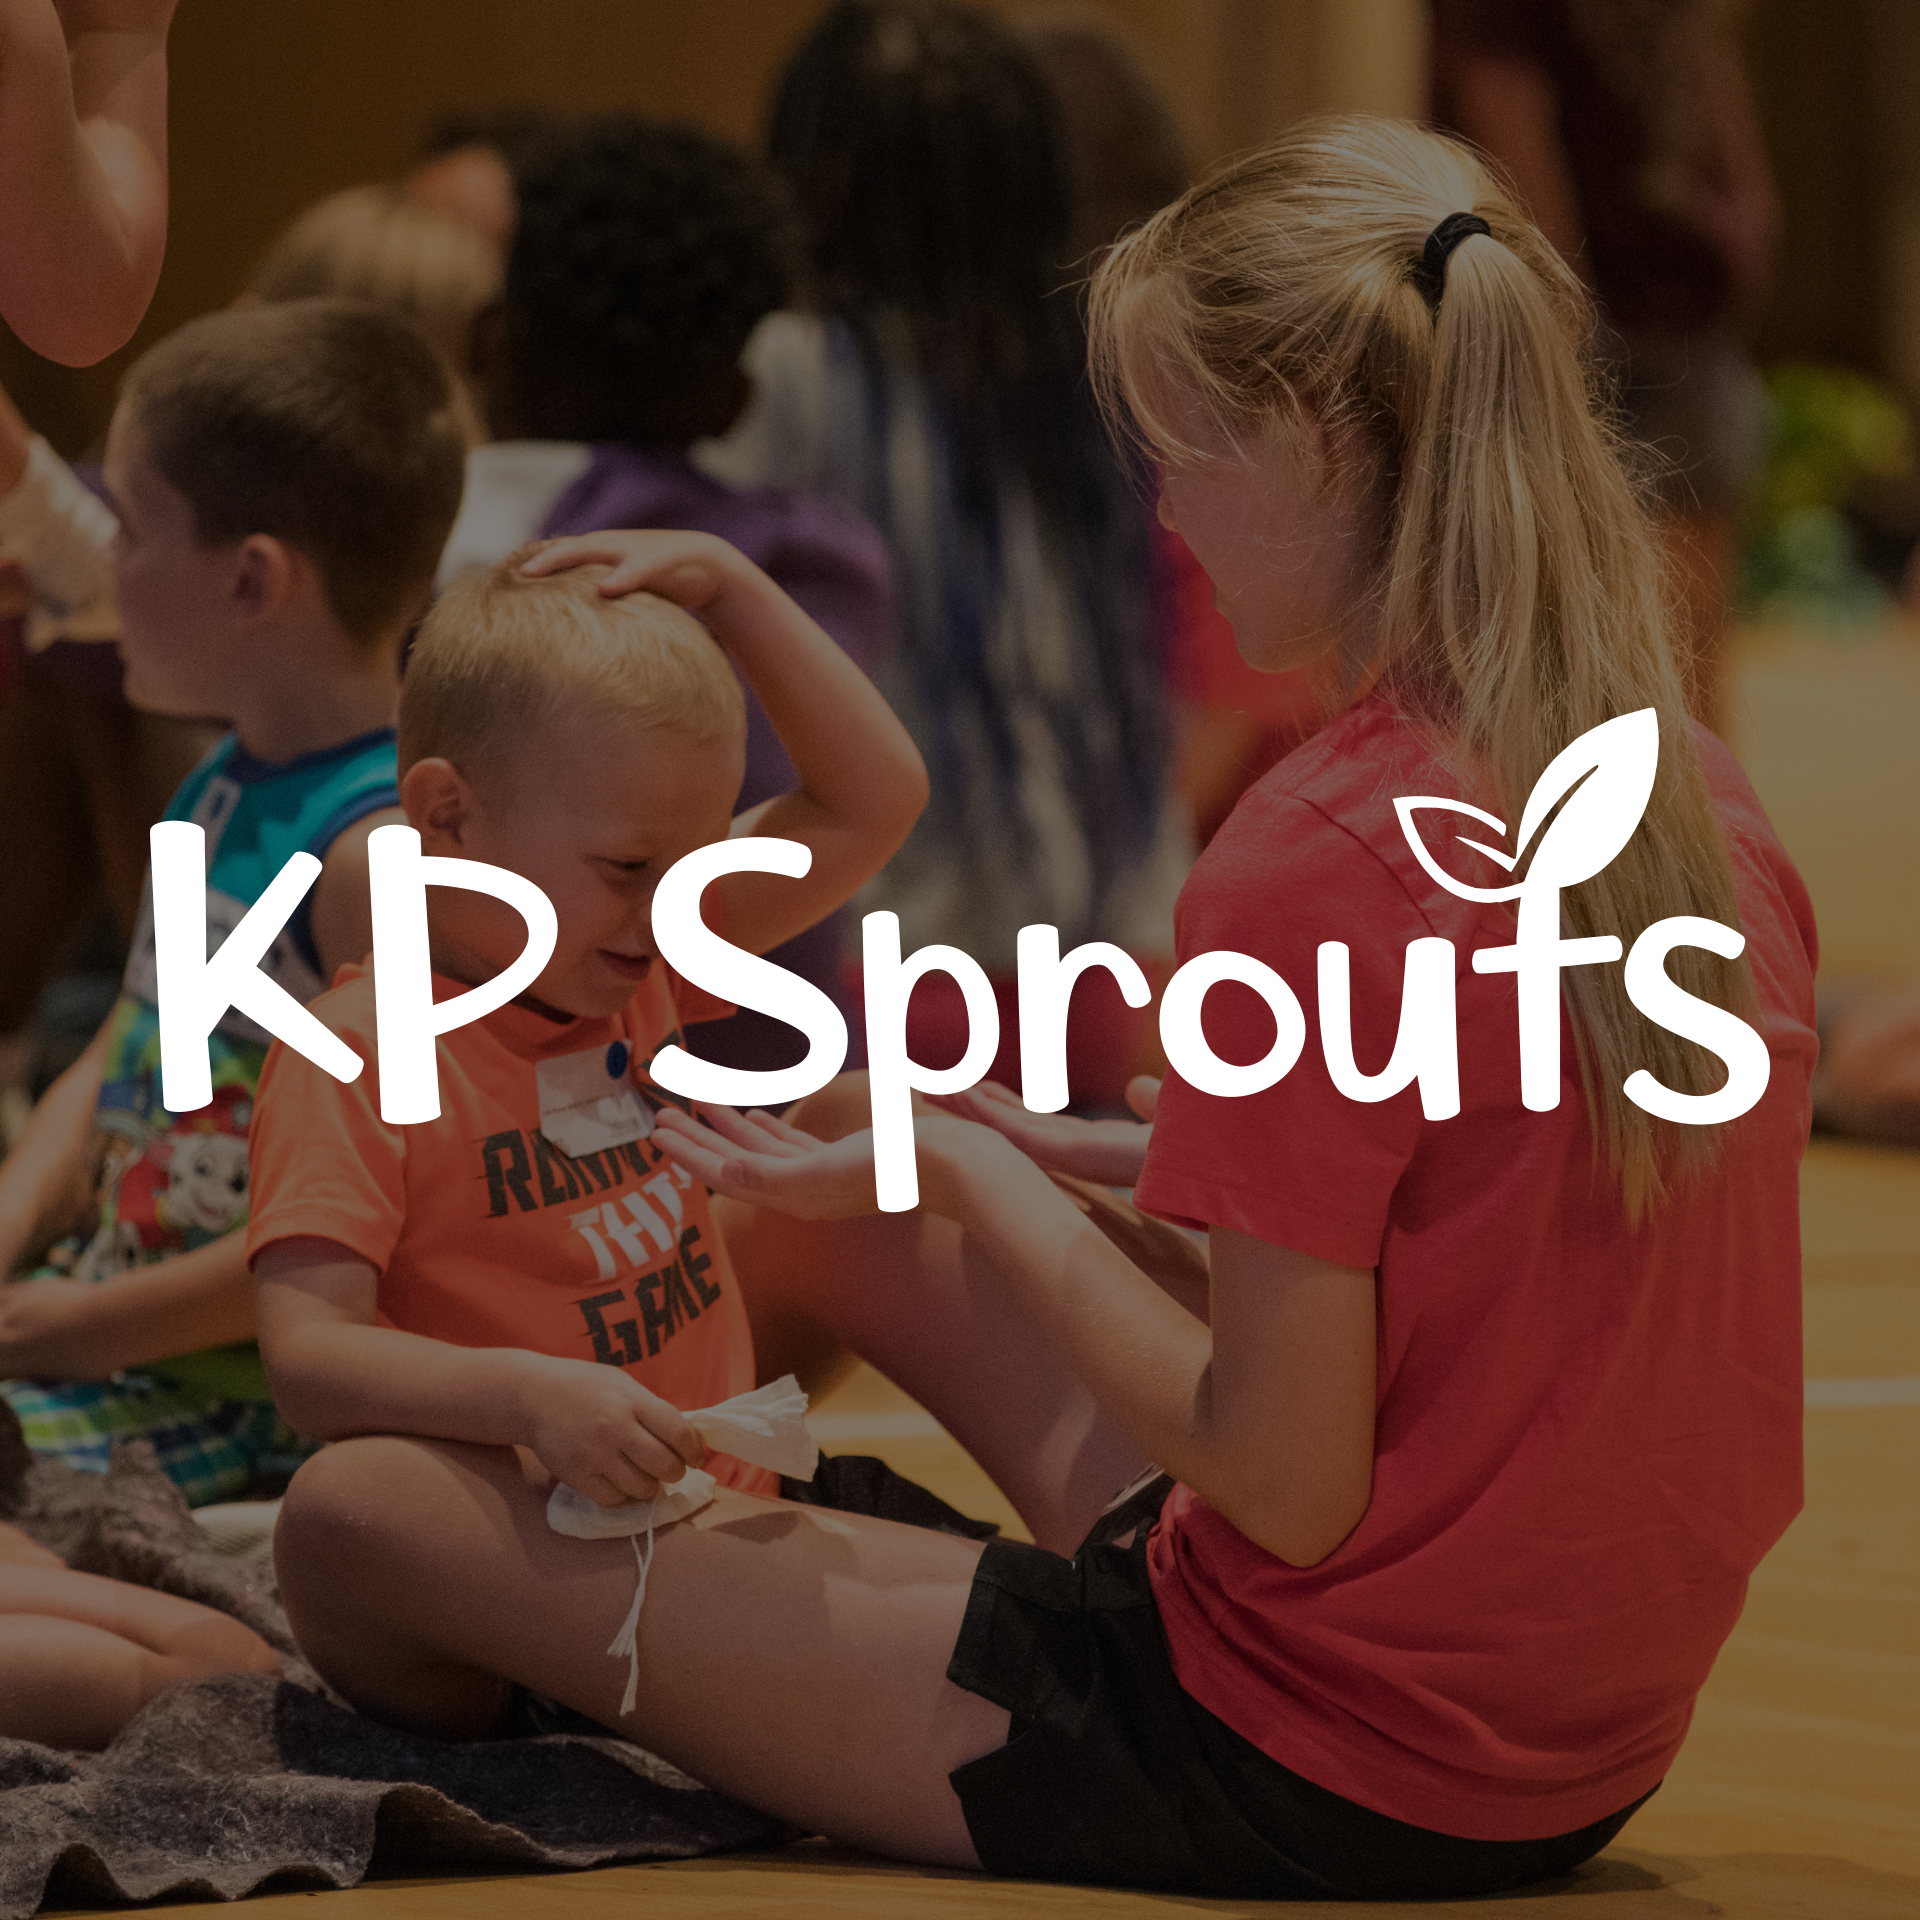 Birth – Pre k - KP Sprouts strives to provide a safe, secure, and loving environment for children where they can experience God's love and learn about Jesus in creative and age-appropriate ways.